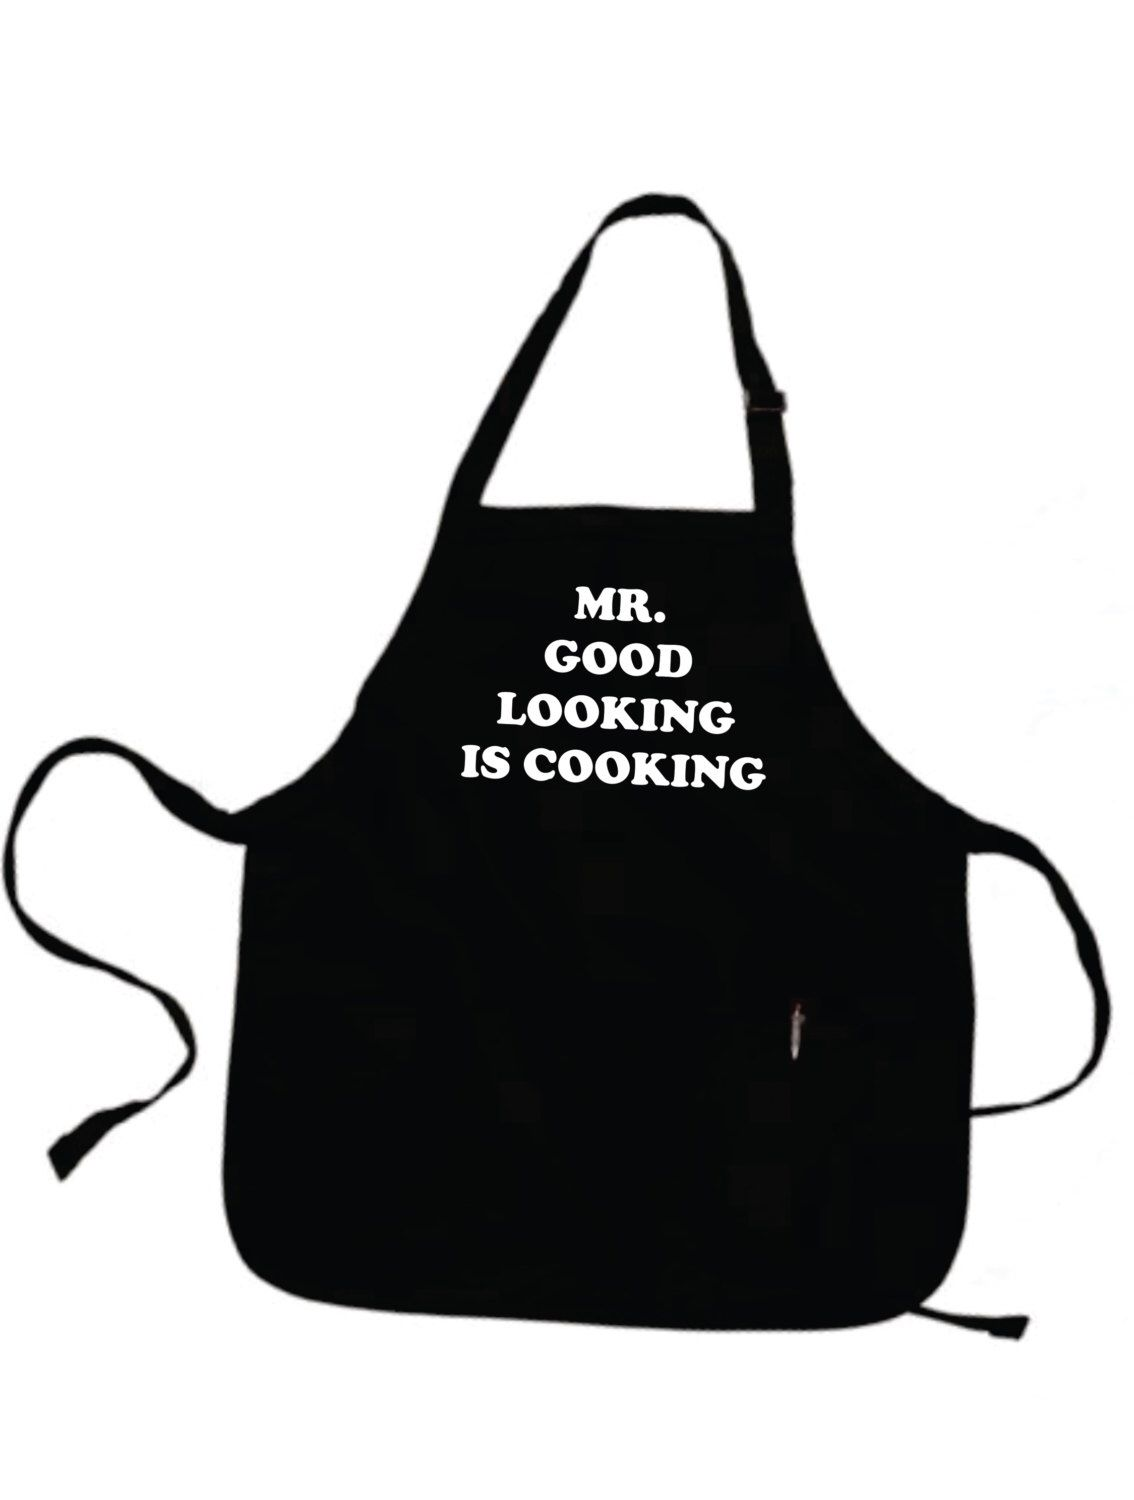 Woodworking apron mens apron Leather personalized apron as valentine gift or husband gift chef apron bbq apron for men custom apron,